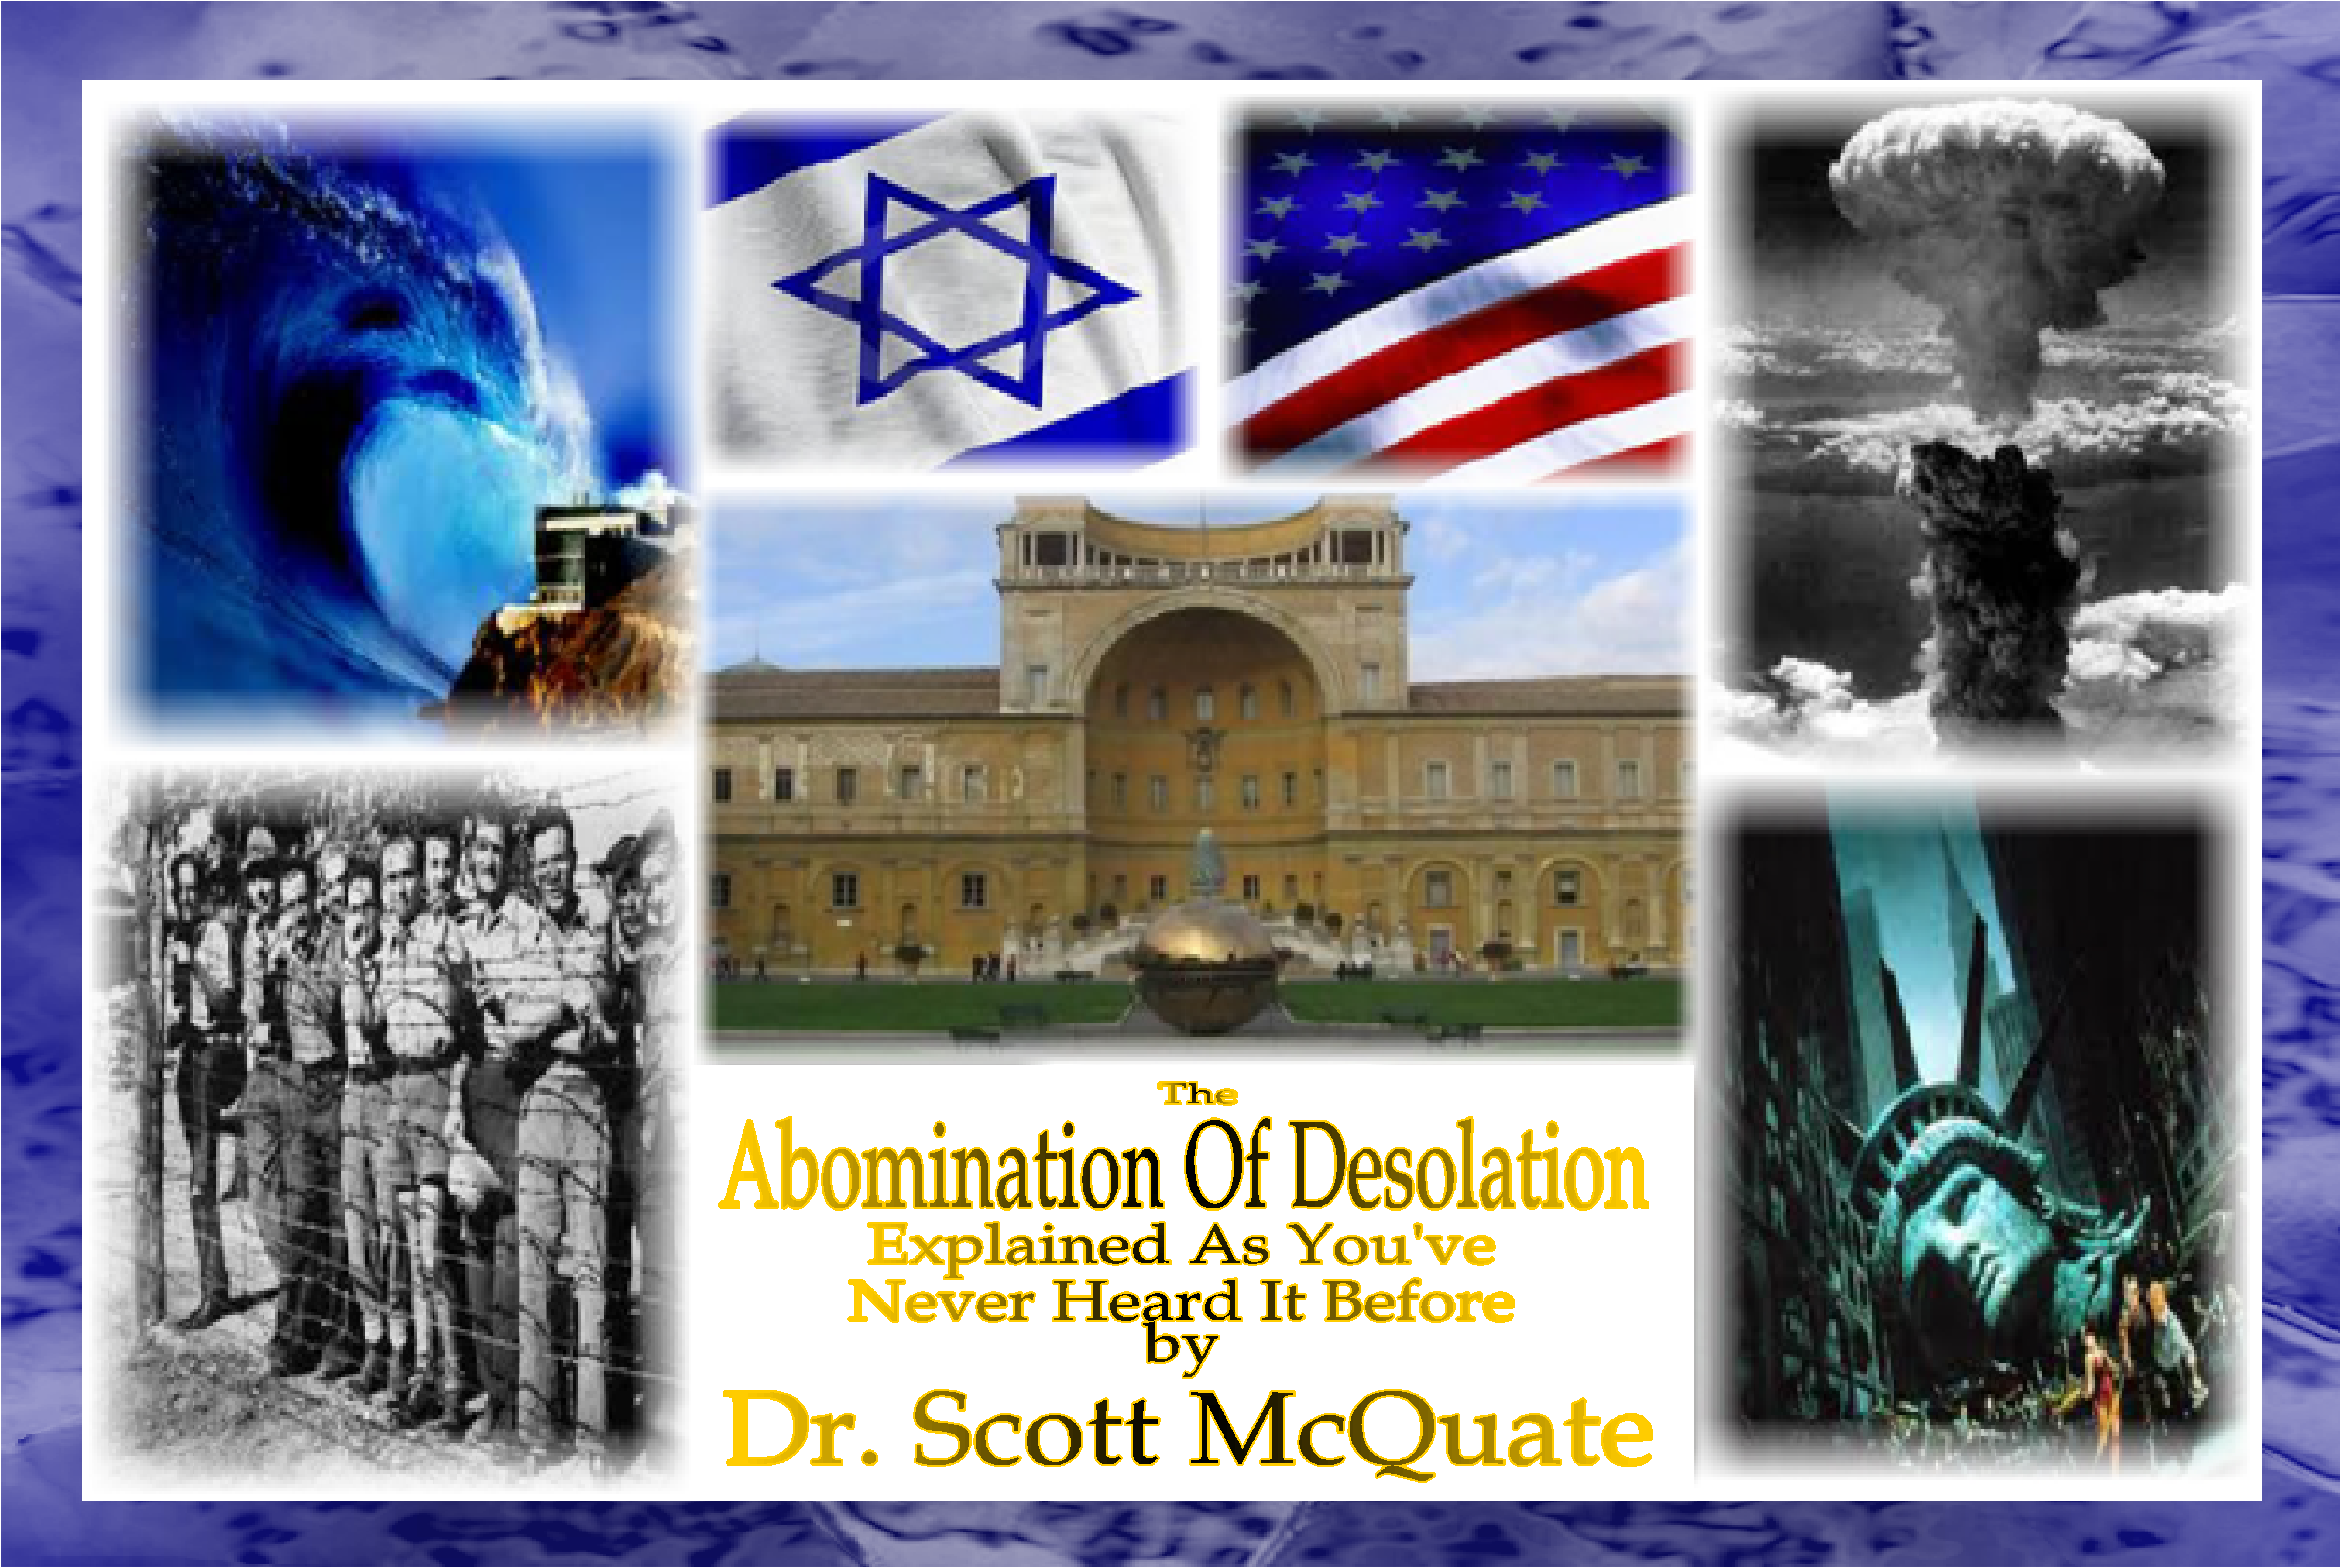 The Abomination Of Desolation Explained By Dr. Scott Mcquate